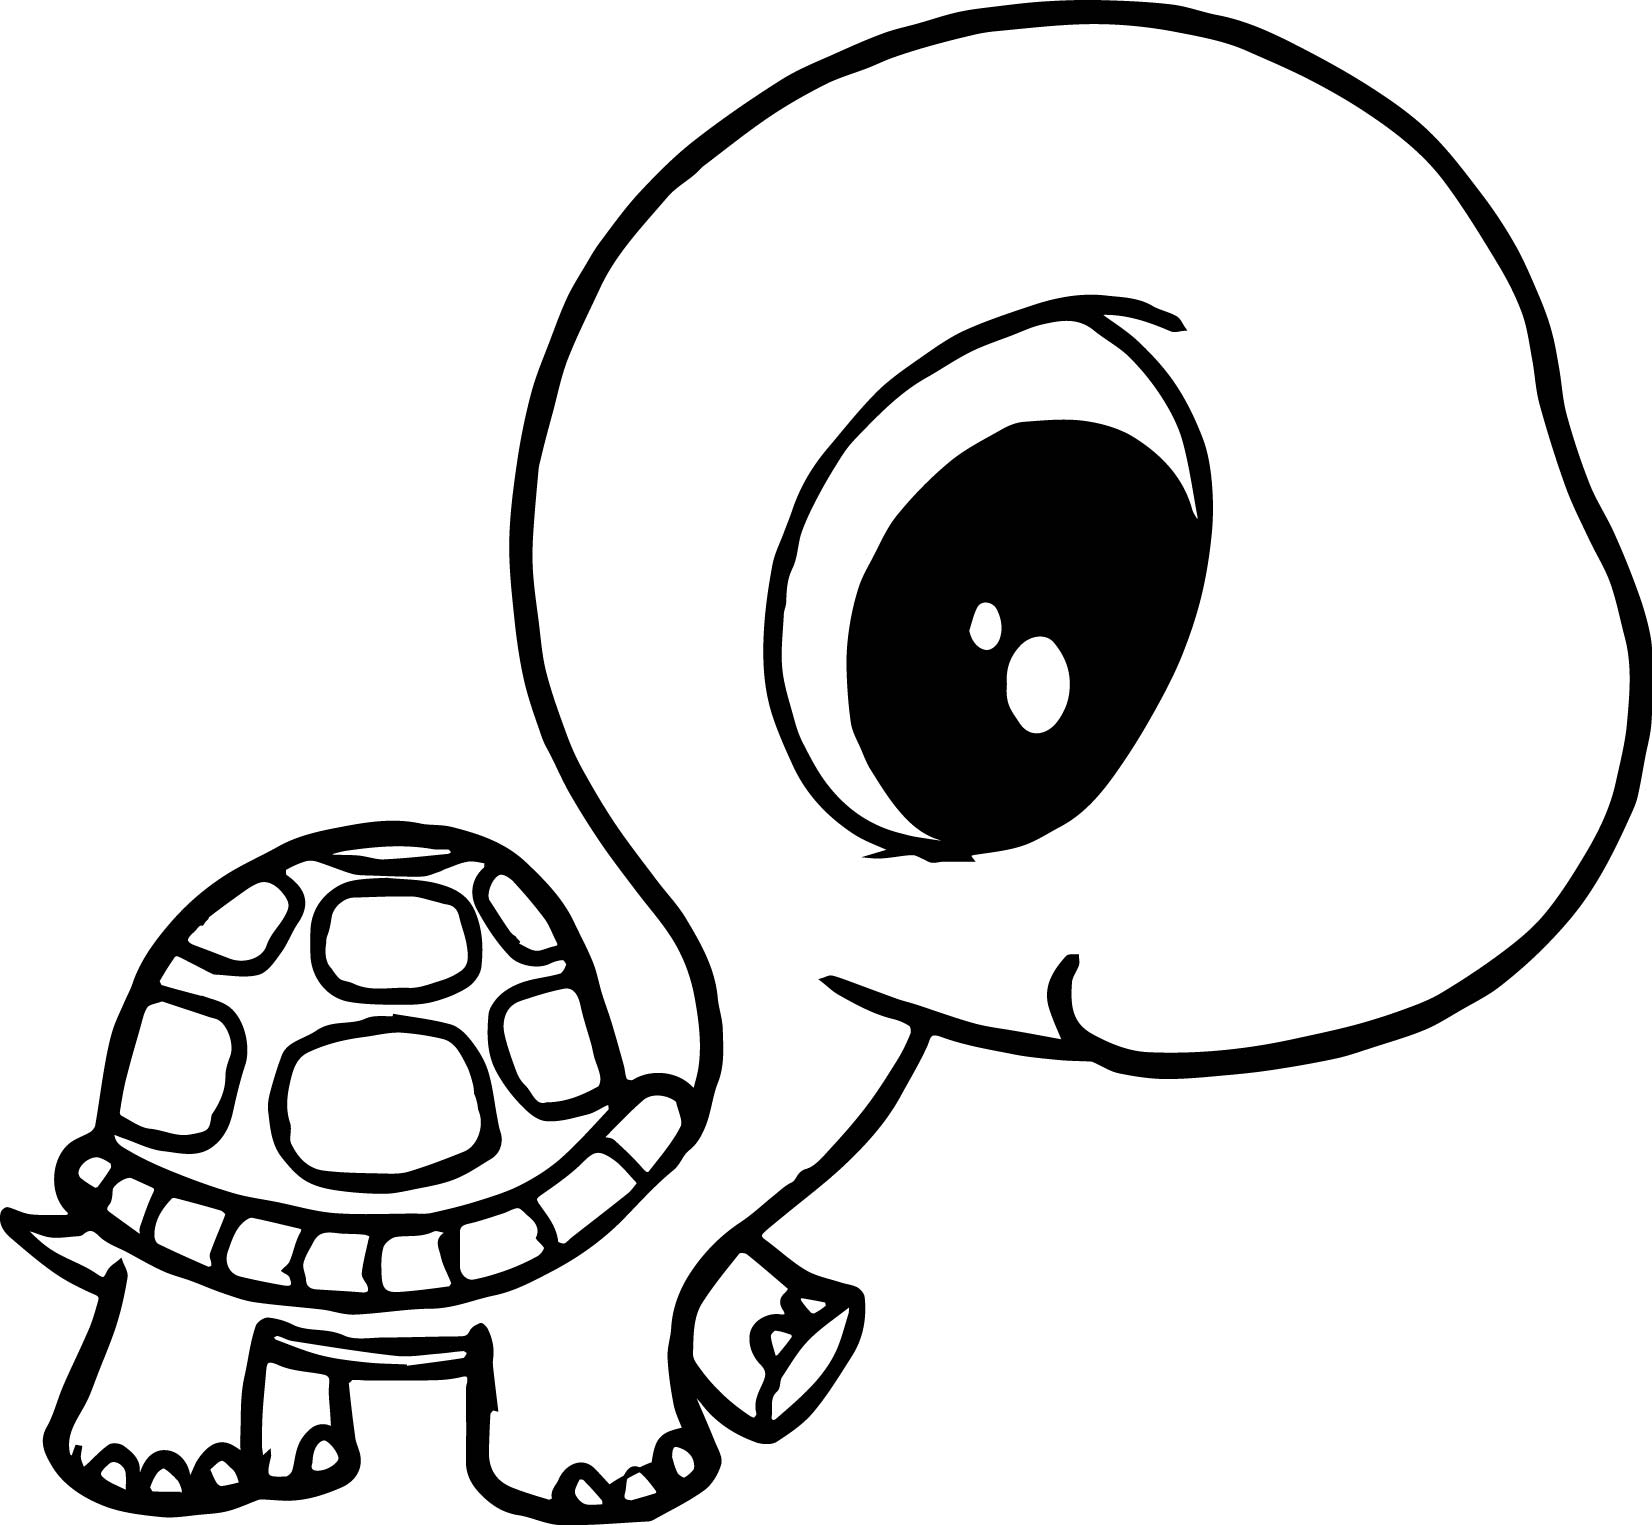 tortoise coloring page print download turtle coloring pages as the coloring tortoise page